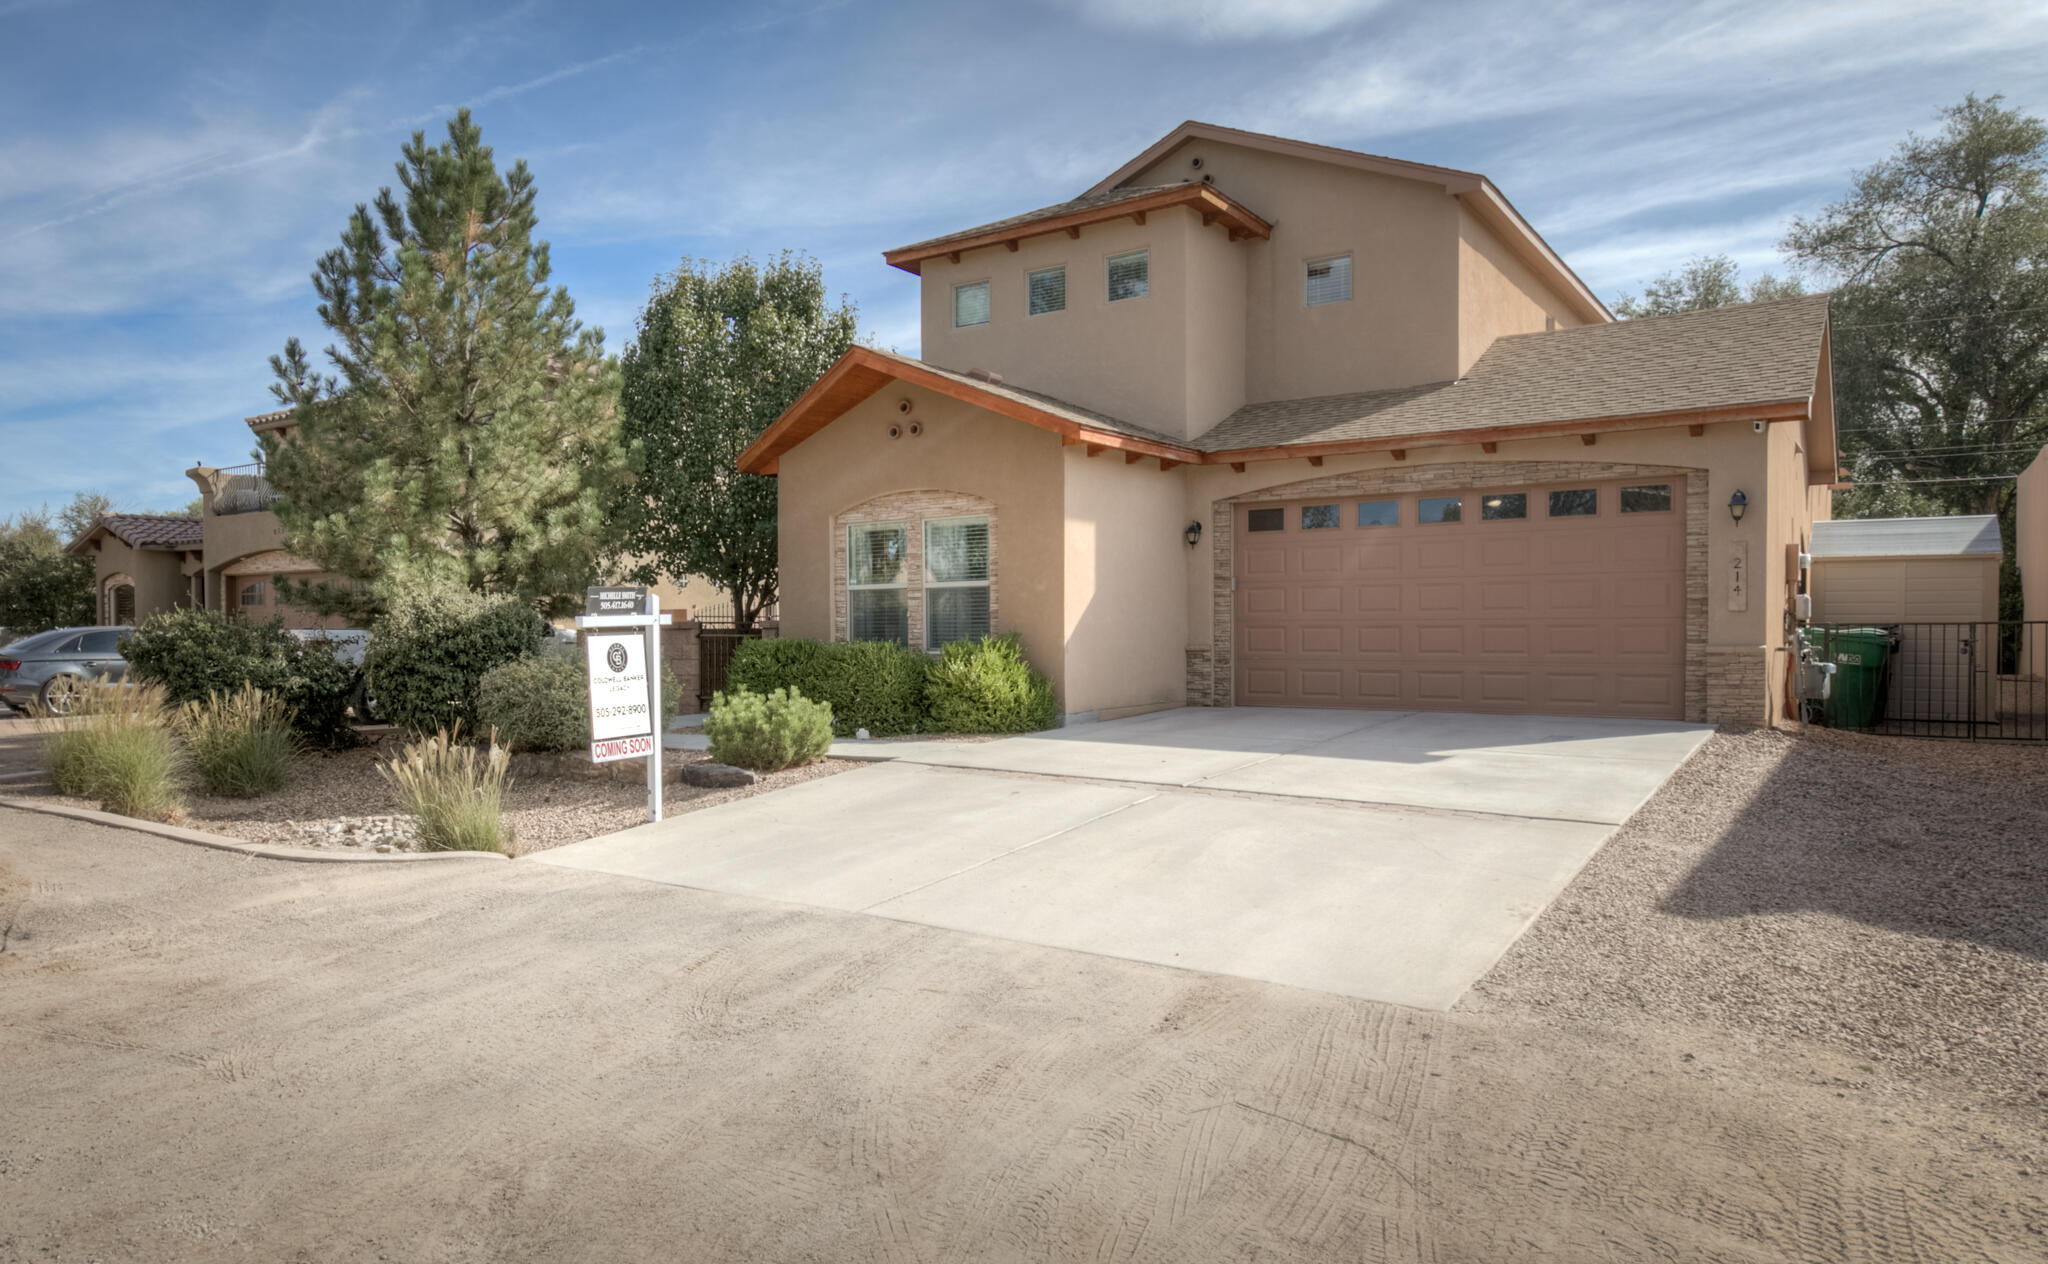 North Valley, Green Built Home! 1 main level master & 1 upstairs master makes this a versatile floorplan w/ plenty of space & options for everyone! Open kitchen concept w/ breakfast bar, stainless appliances, granite countertops, glass accent & tile backsplash.  Main level office has direct access to the backyard.  Upstairs has a large loft & 4 additional bedrooms.  Refrigerated air, tankless water heater, LED lighting- this property boast a NM Gold energy efficient rating!  This property has been well cared for & feels like home. Great entertaining in fully landscaped backyard w/ open + covered patio spaces, manicured lawn & side yard access!  Excellent storage + tandem 3-car garage! Centrally located w/ easy access to Paseo, restaurants & trails- schedule your showing w/ a Realtor today!